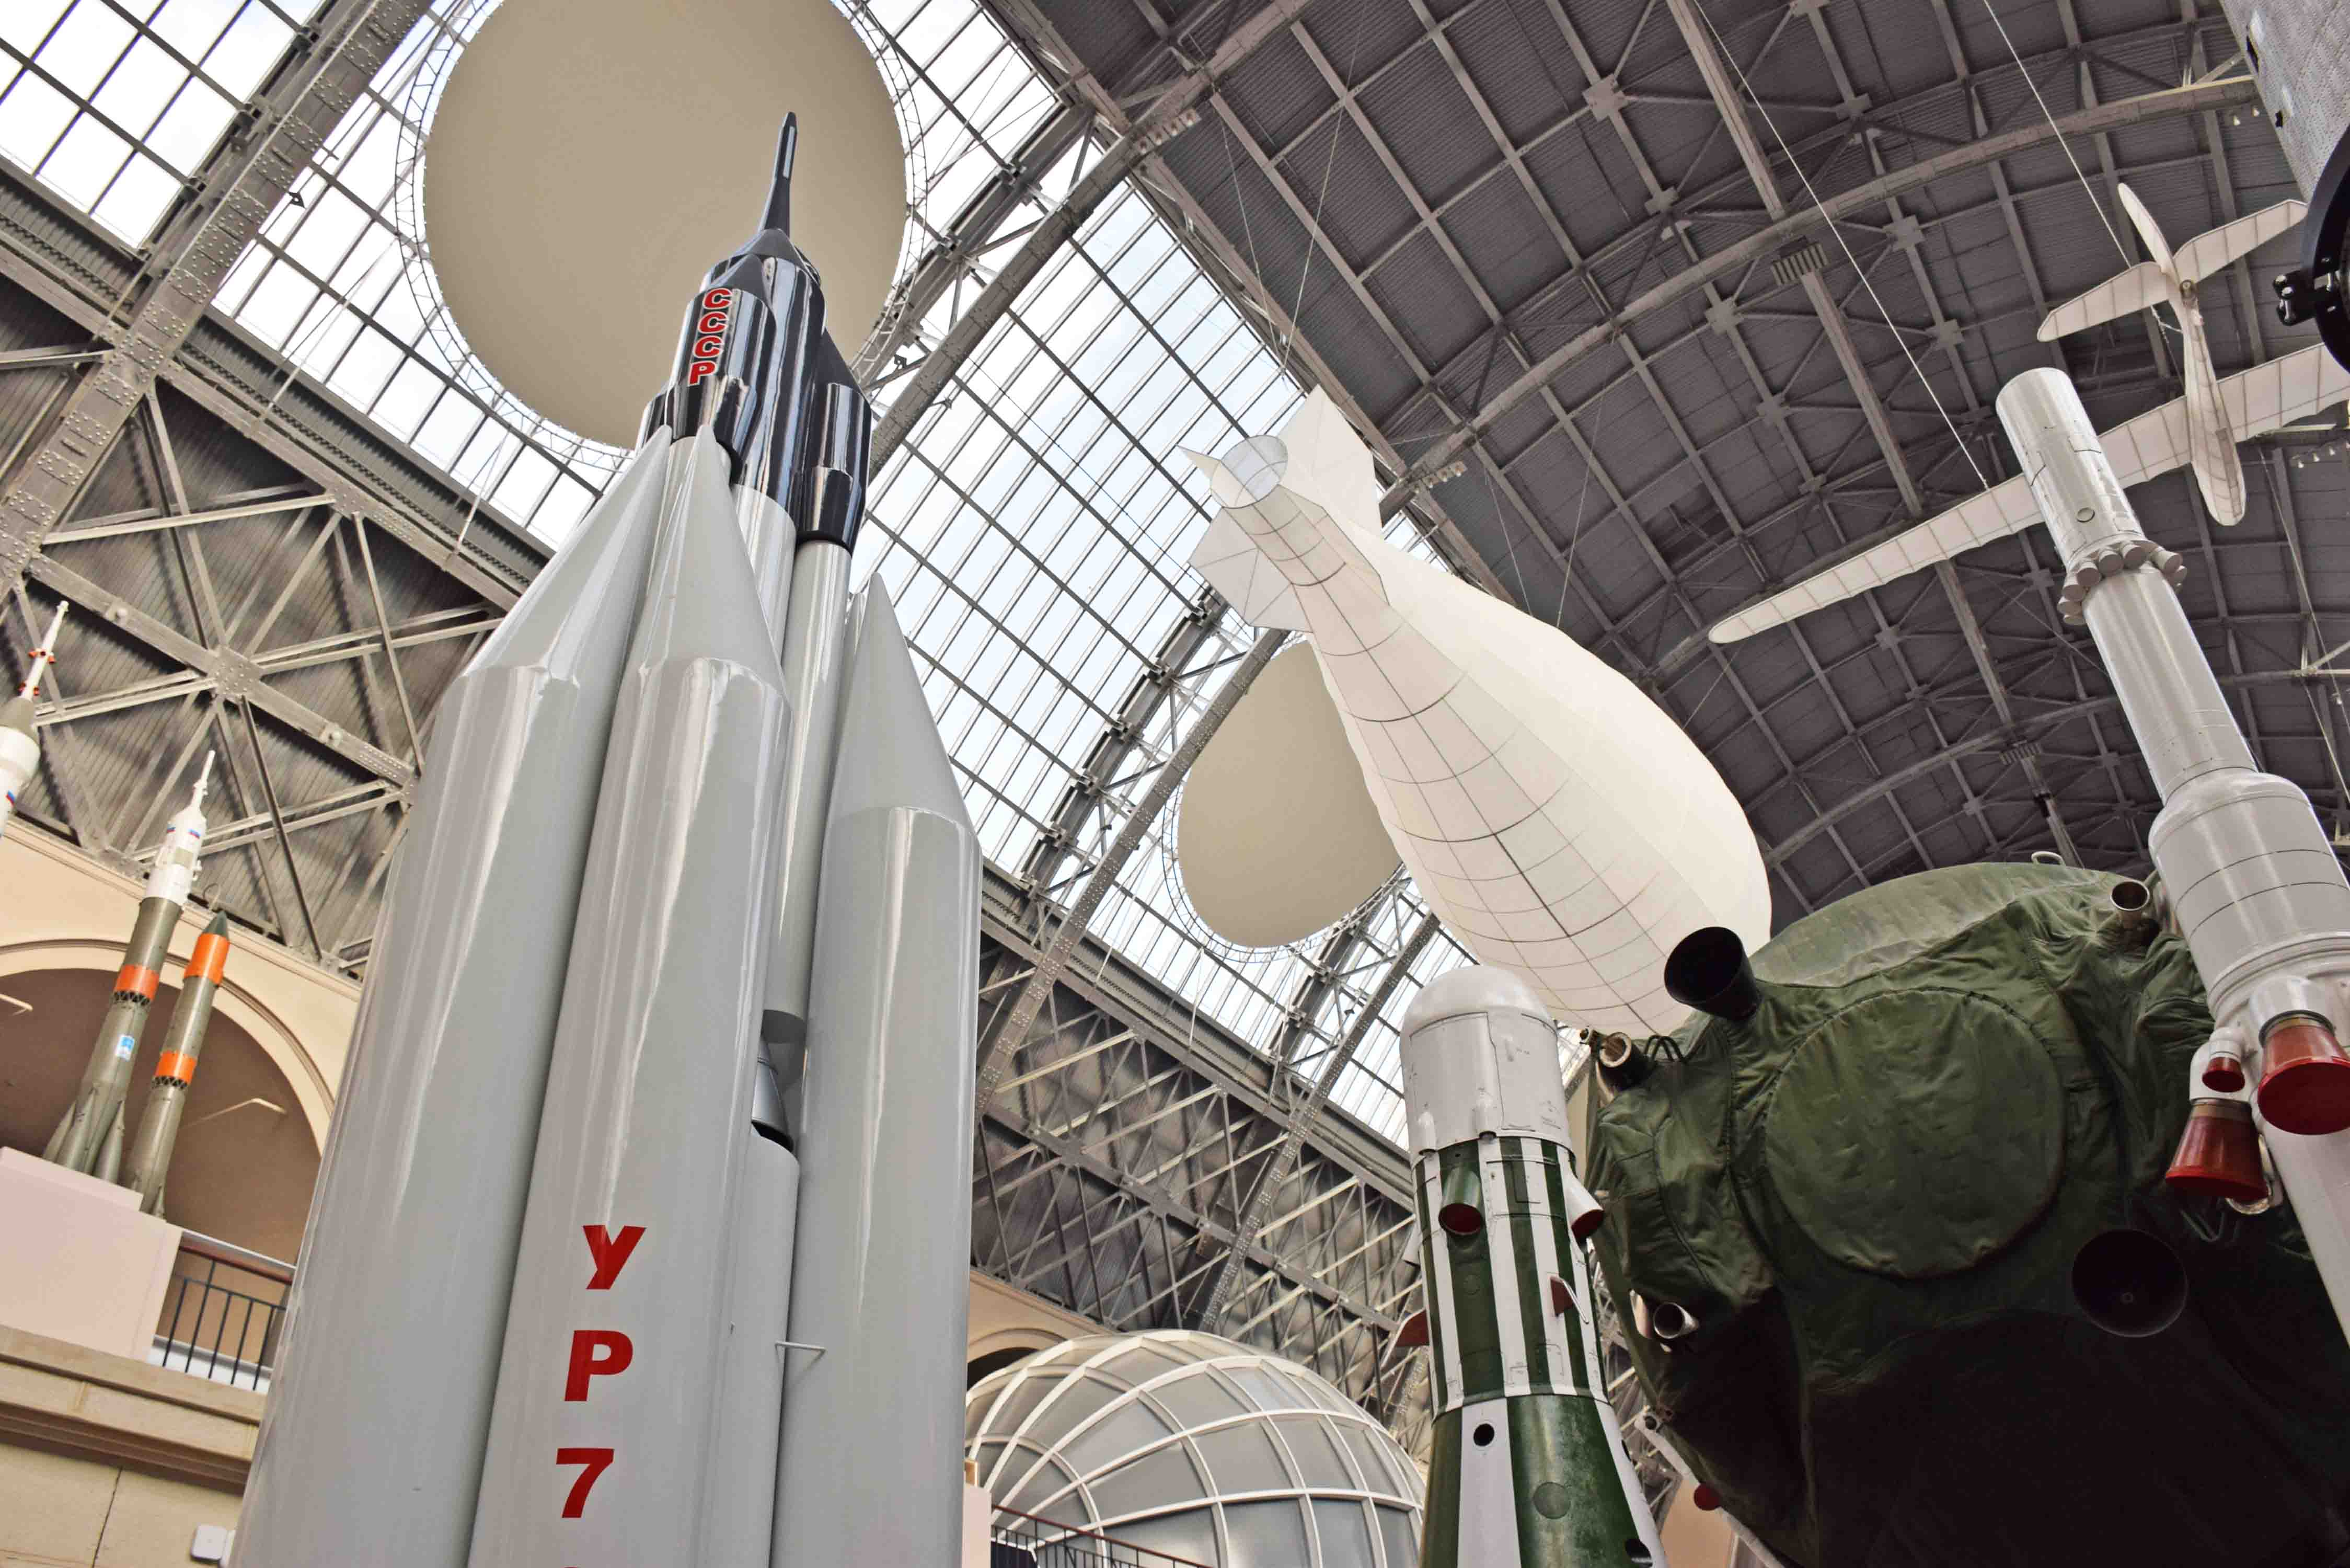 Cosmonautics and Aviation Centre - VDNH - Moscow